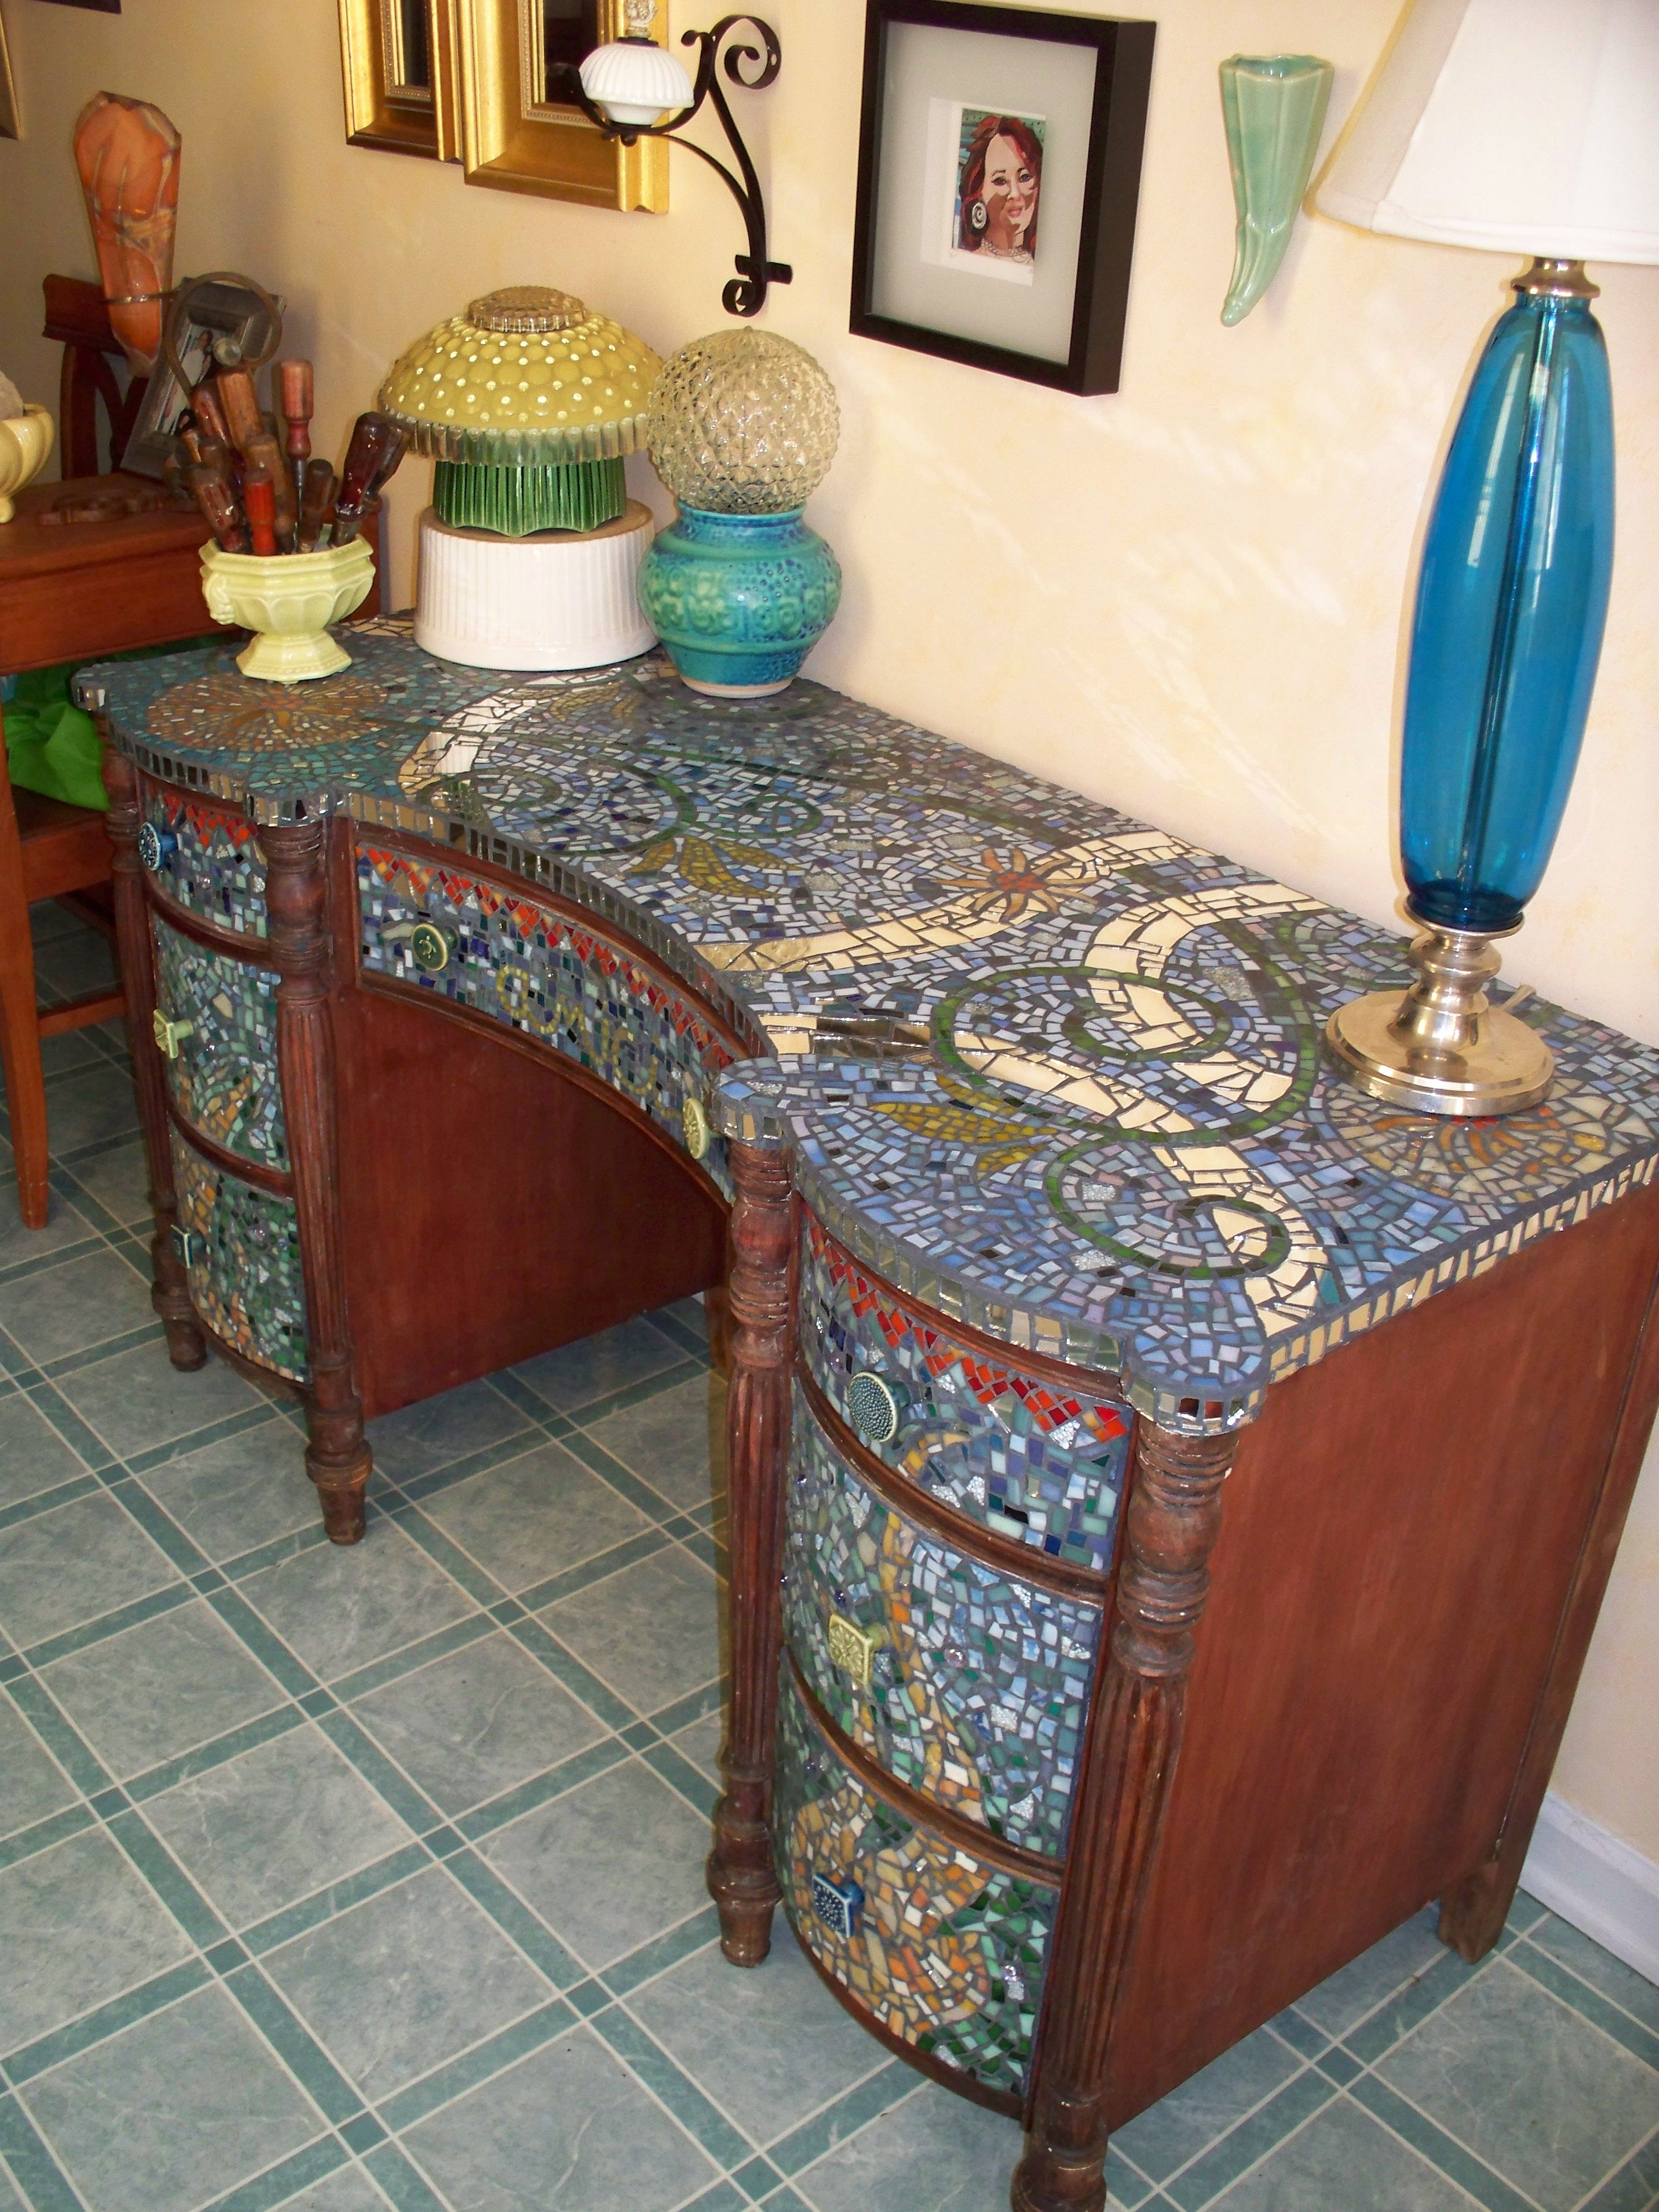 Exceptional Furniture Home Decor Design. Good Mosaic Work Could Be Done On Any Piece Of  Furniture (well, Most Wood Based Furniture, Of Course). What A Beautiful  Idea.